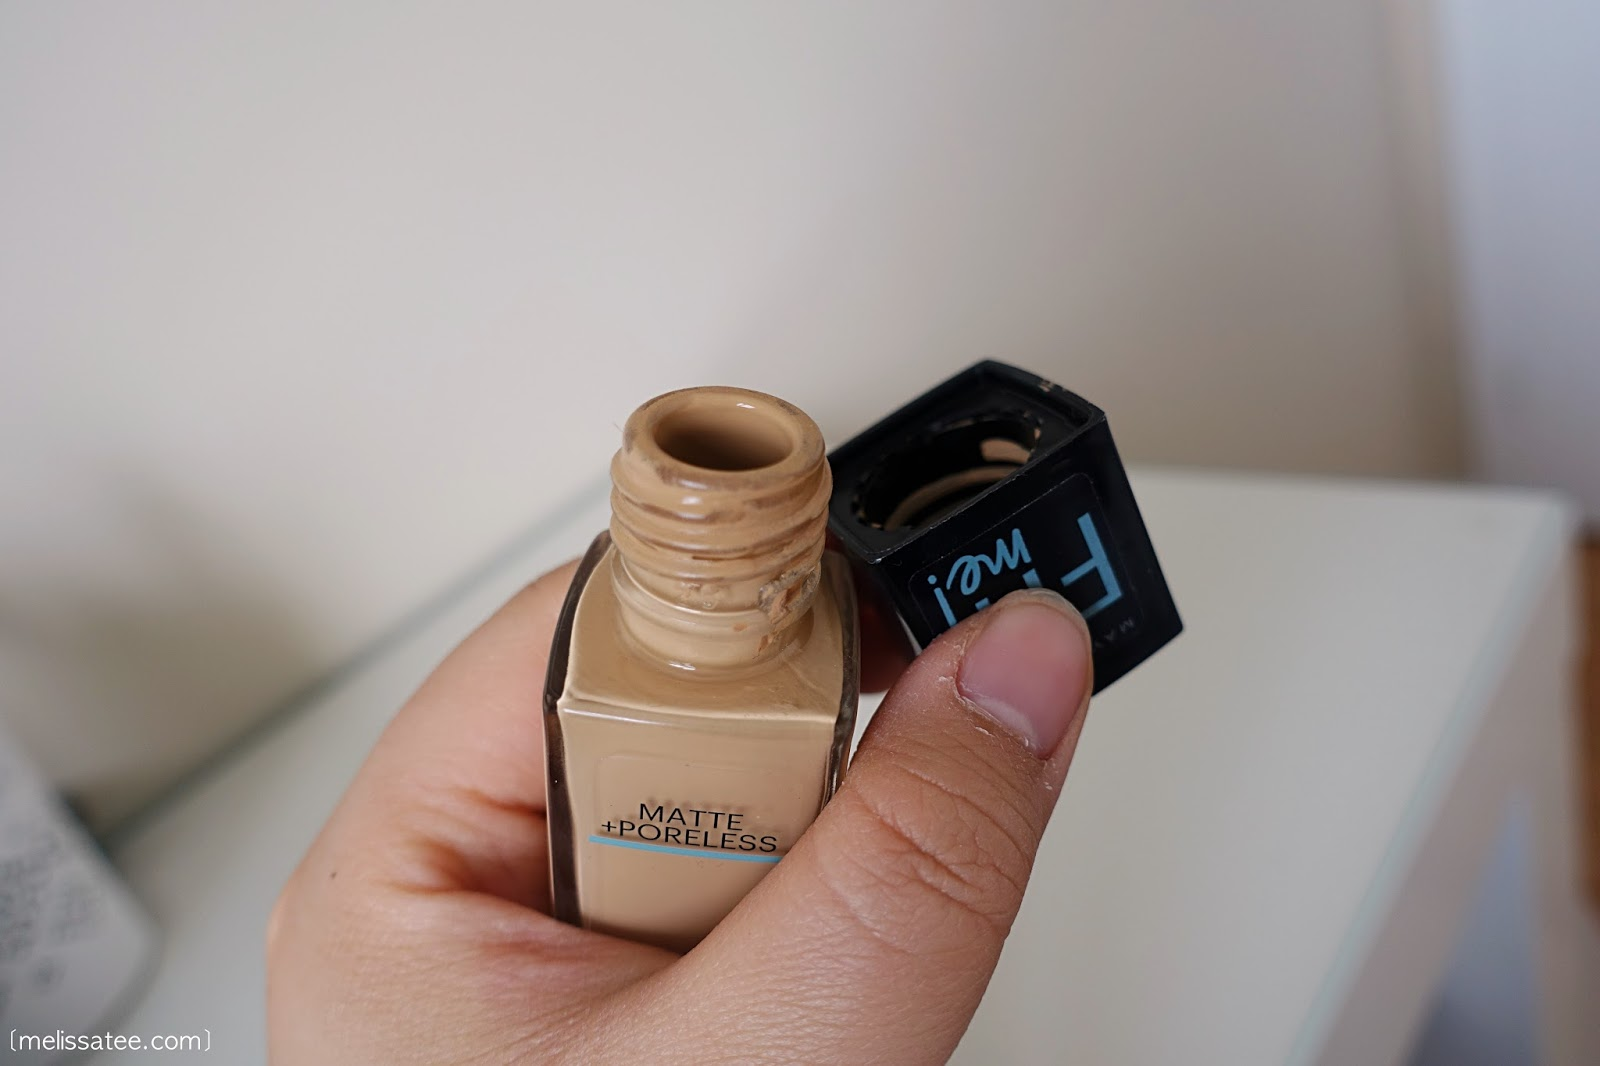 maybelline, maybelline fit me, maybelline fit me matte and poreless, maybelline fit me matte, maybelline fit me matte foundation, maybelline fit me concealer, maybelline fit me powder, maybelline fit me line